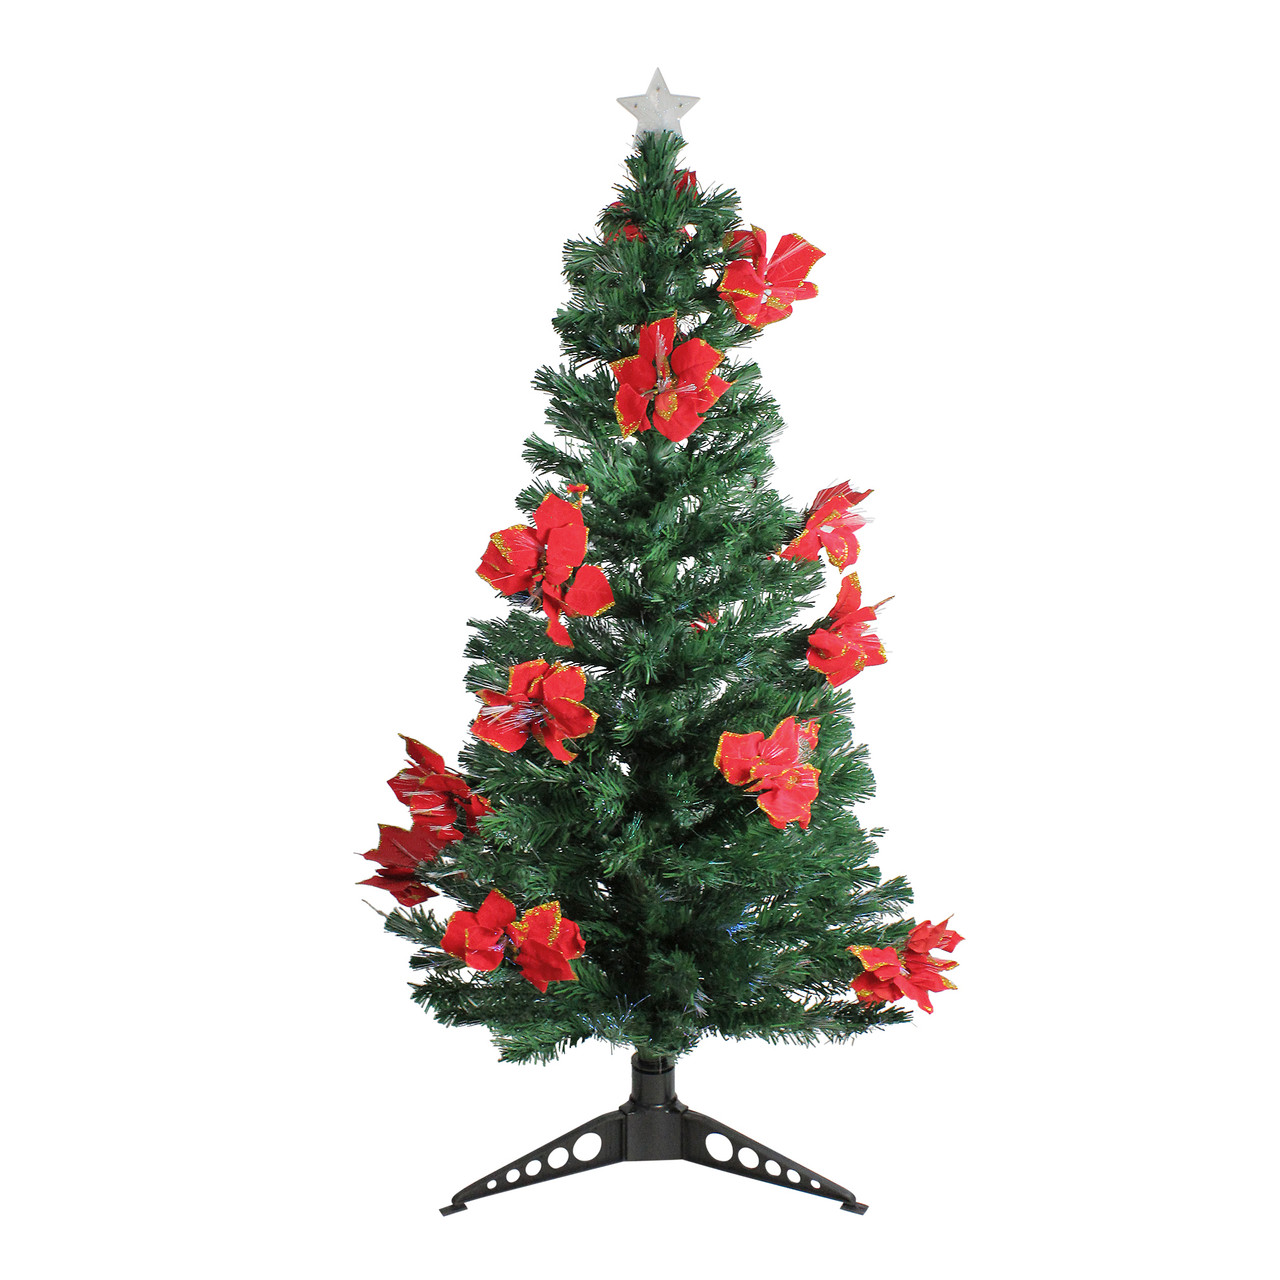 5' Pre-Lit Fiber Optic Artificial Christmas Tree with Red ...